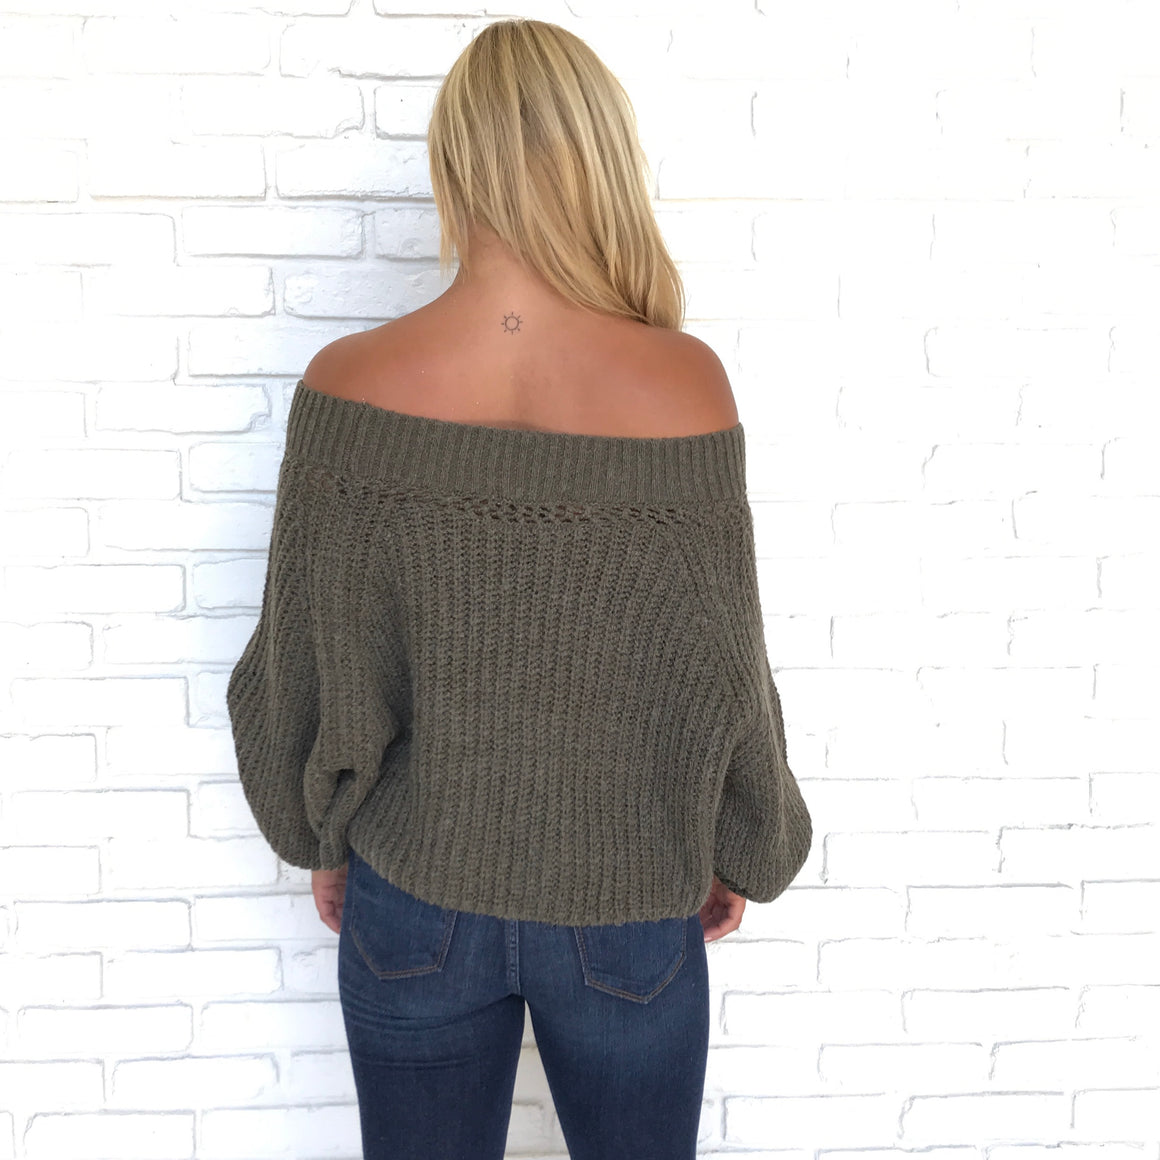 Baby It's Cold Out Side Knit Sweater